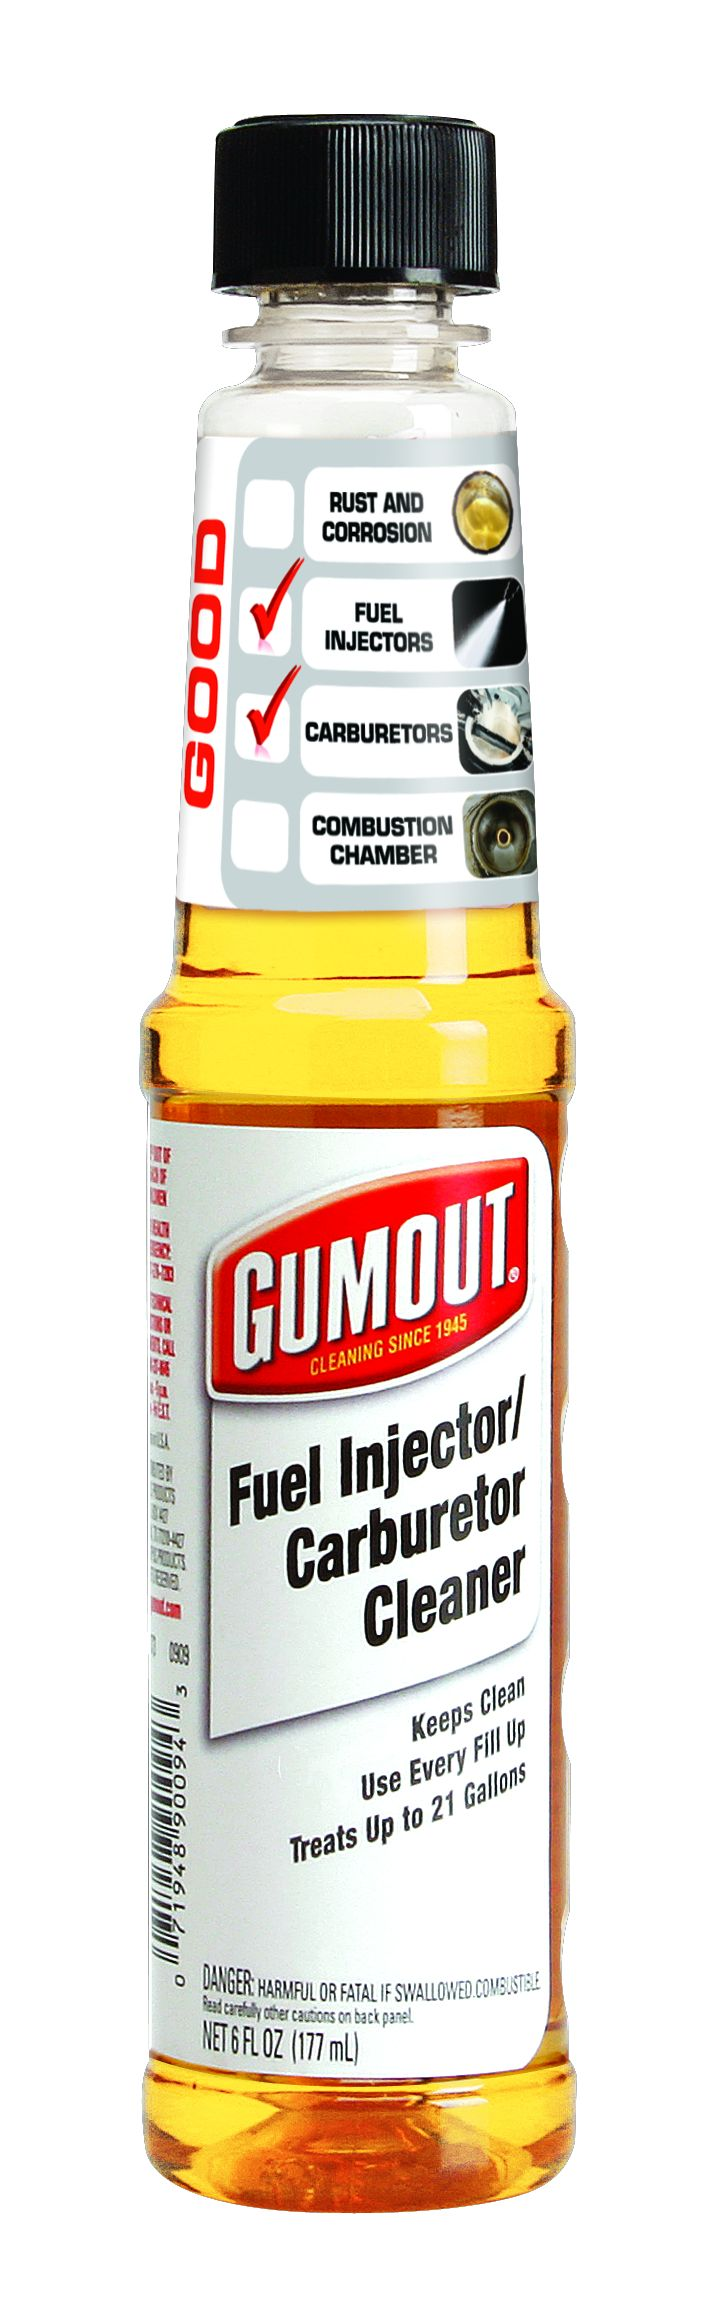 800001373 Gumout Carburetor Cleaner Use To Clean Fuel Injectors And